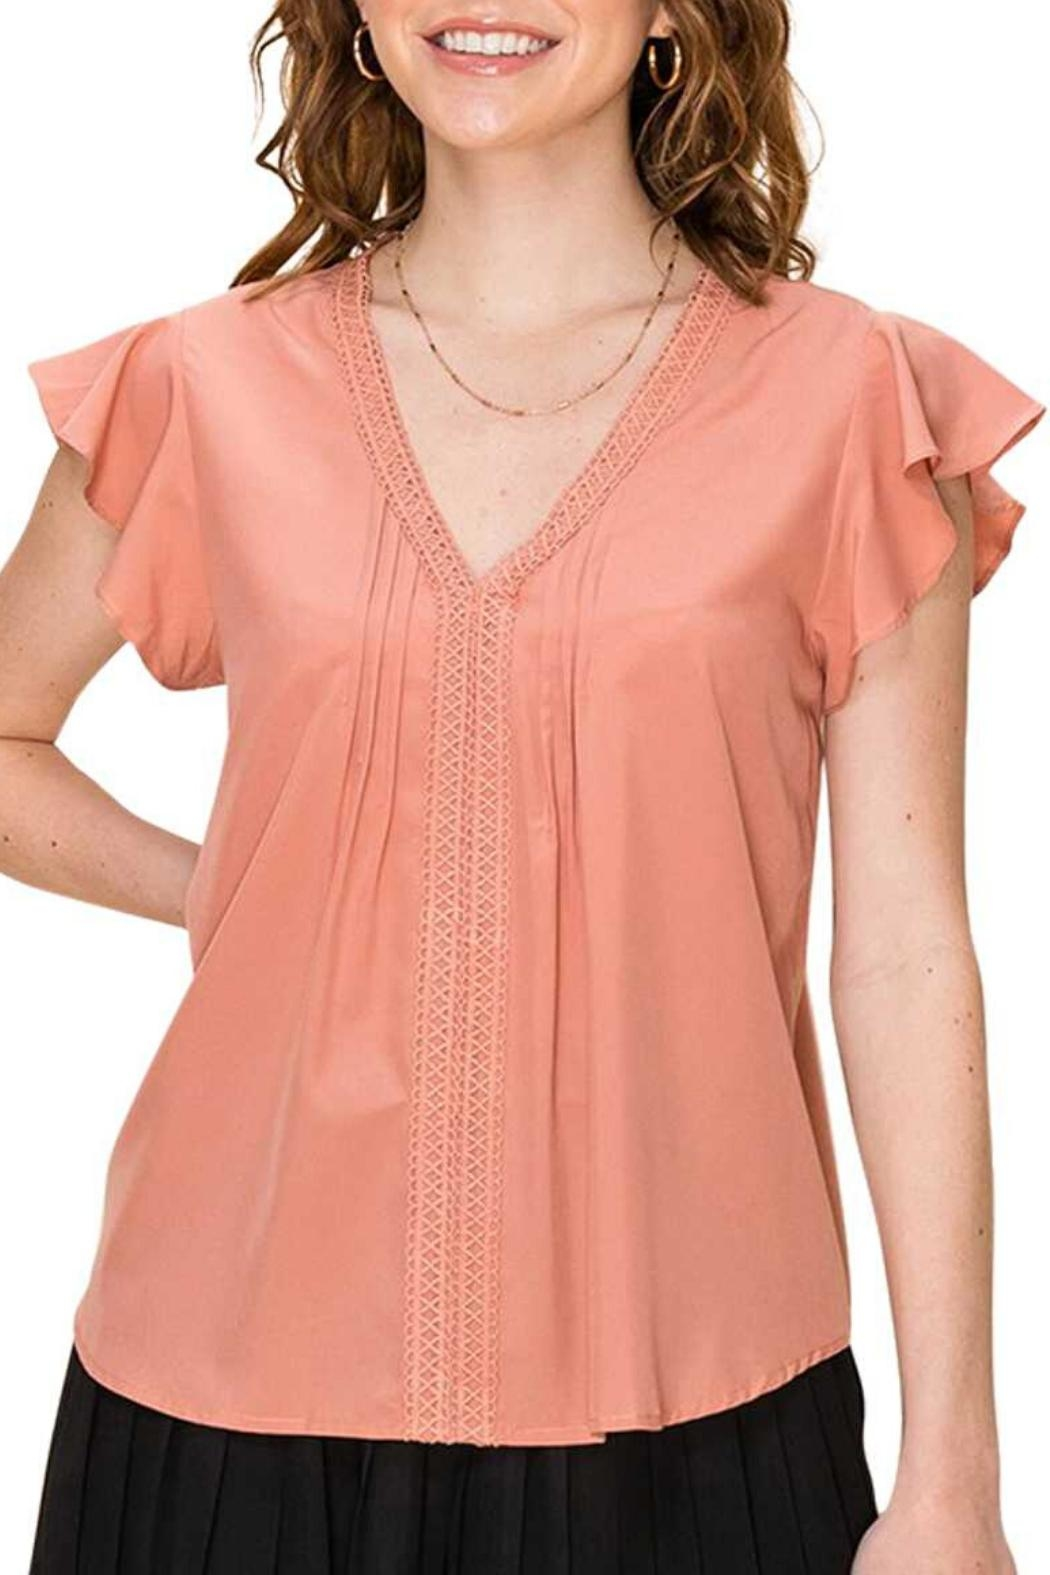 Favlux Peach Pleated Blouse - Main Image